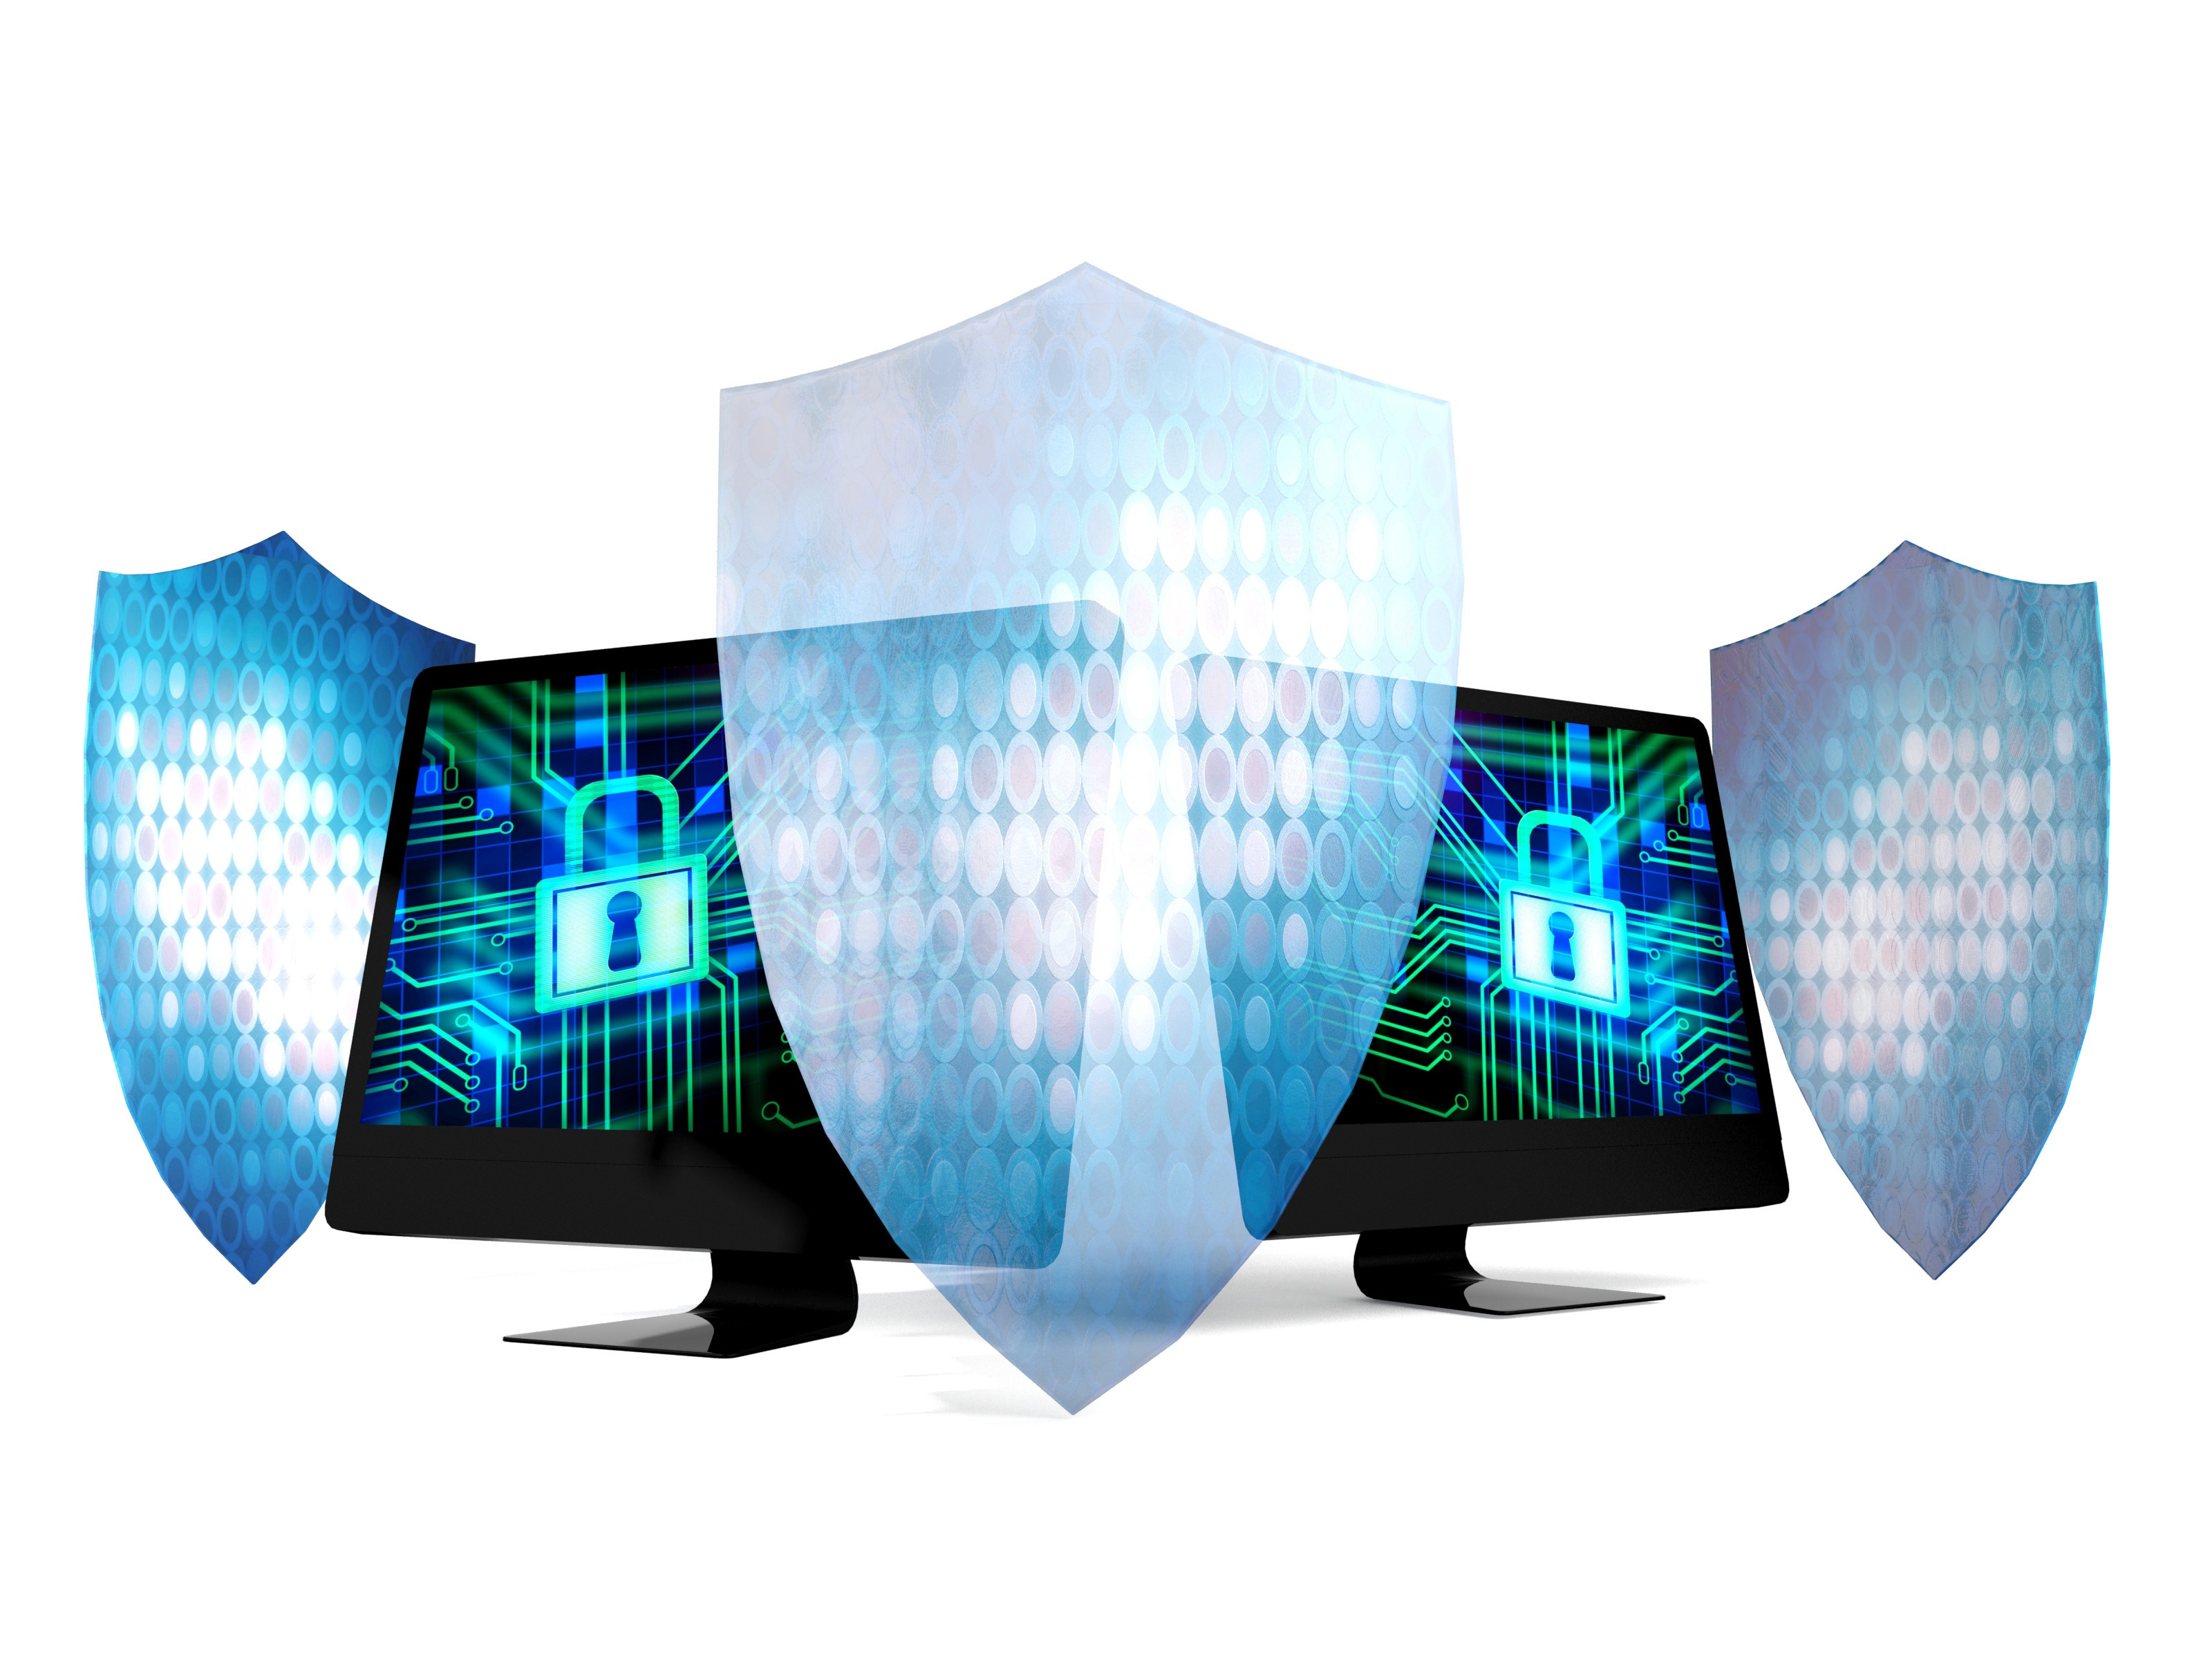 IT Guardian Shield and Computer Monitor AdobeStock_85366822.jpeg